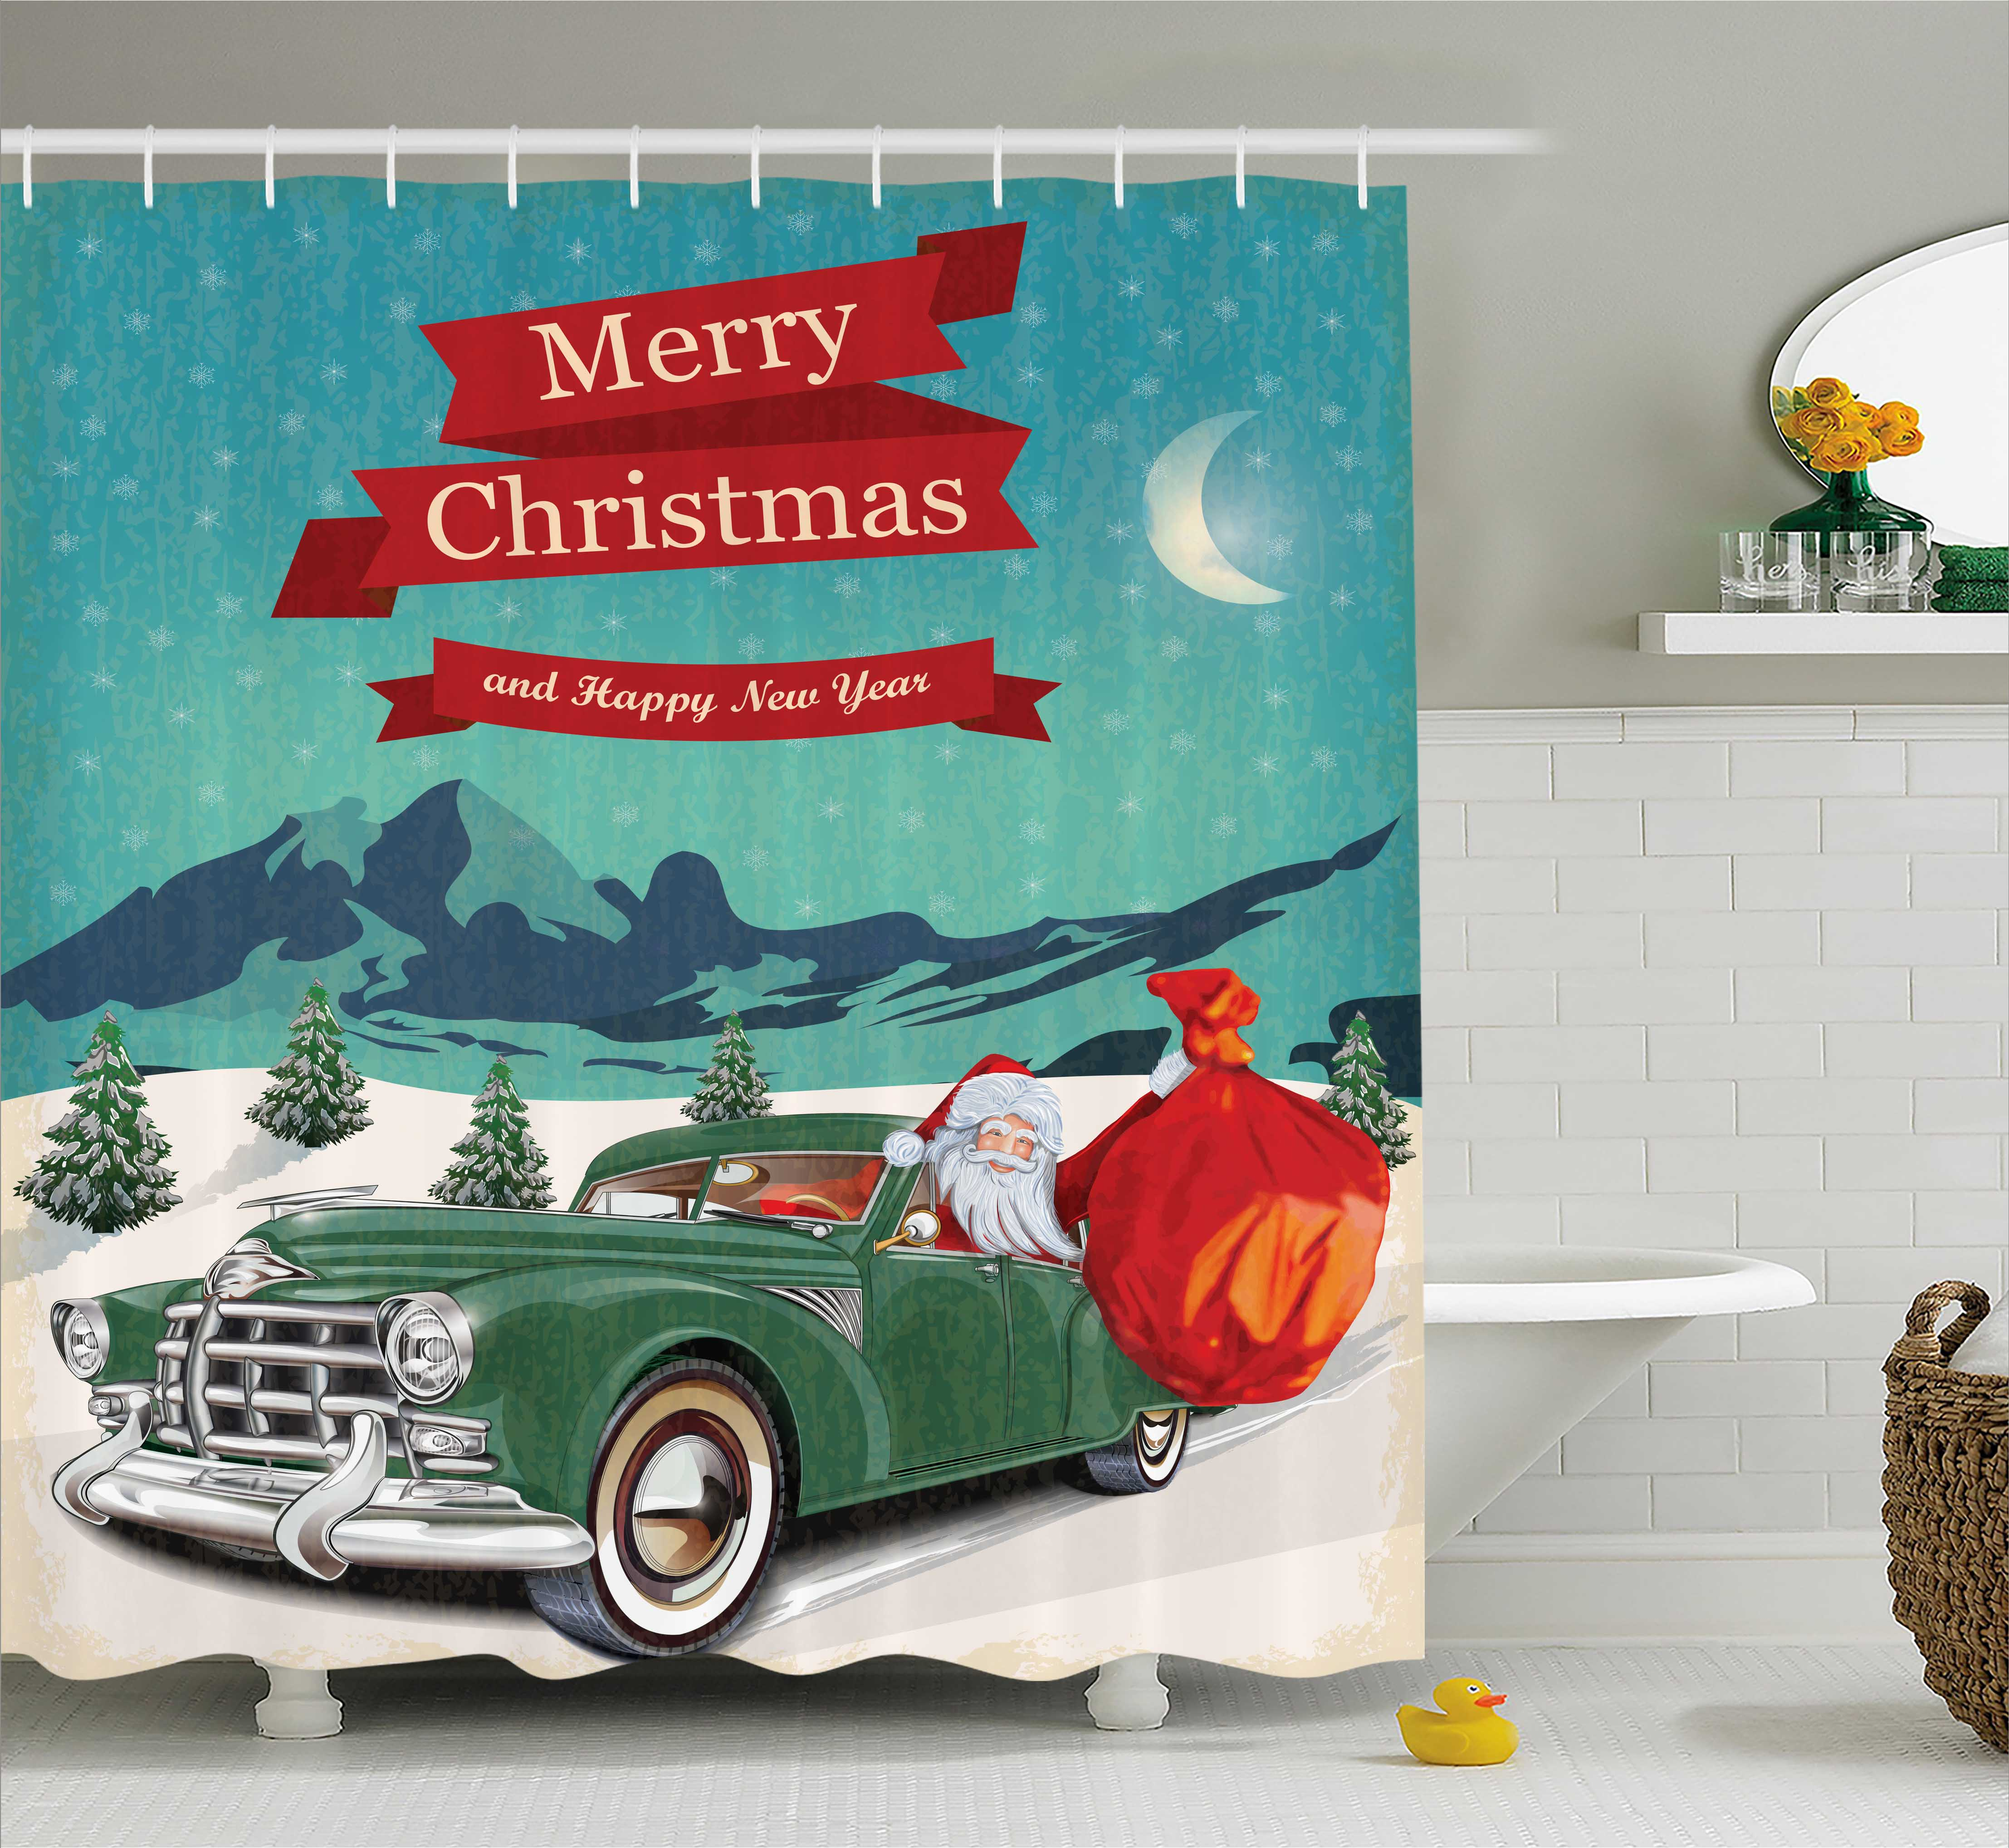 Christmas Decorations Shower Curtain Set, Santa In Classic American Car  With Bag Of Toys Snowy